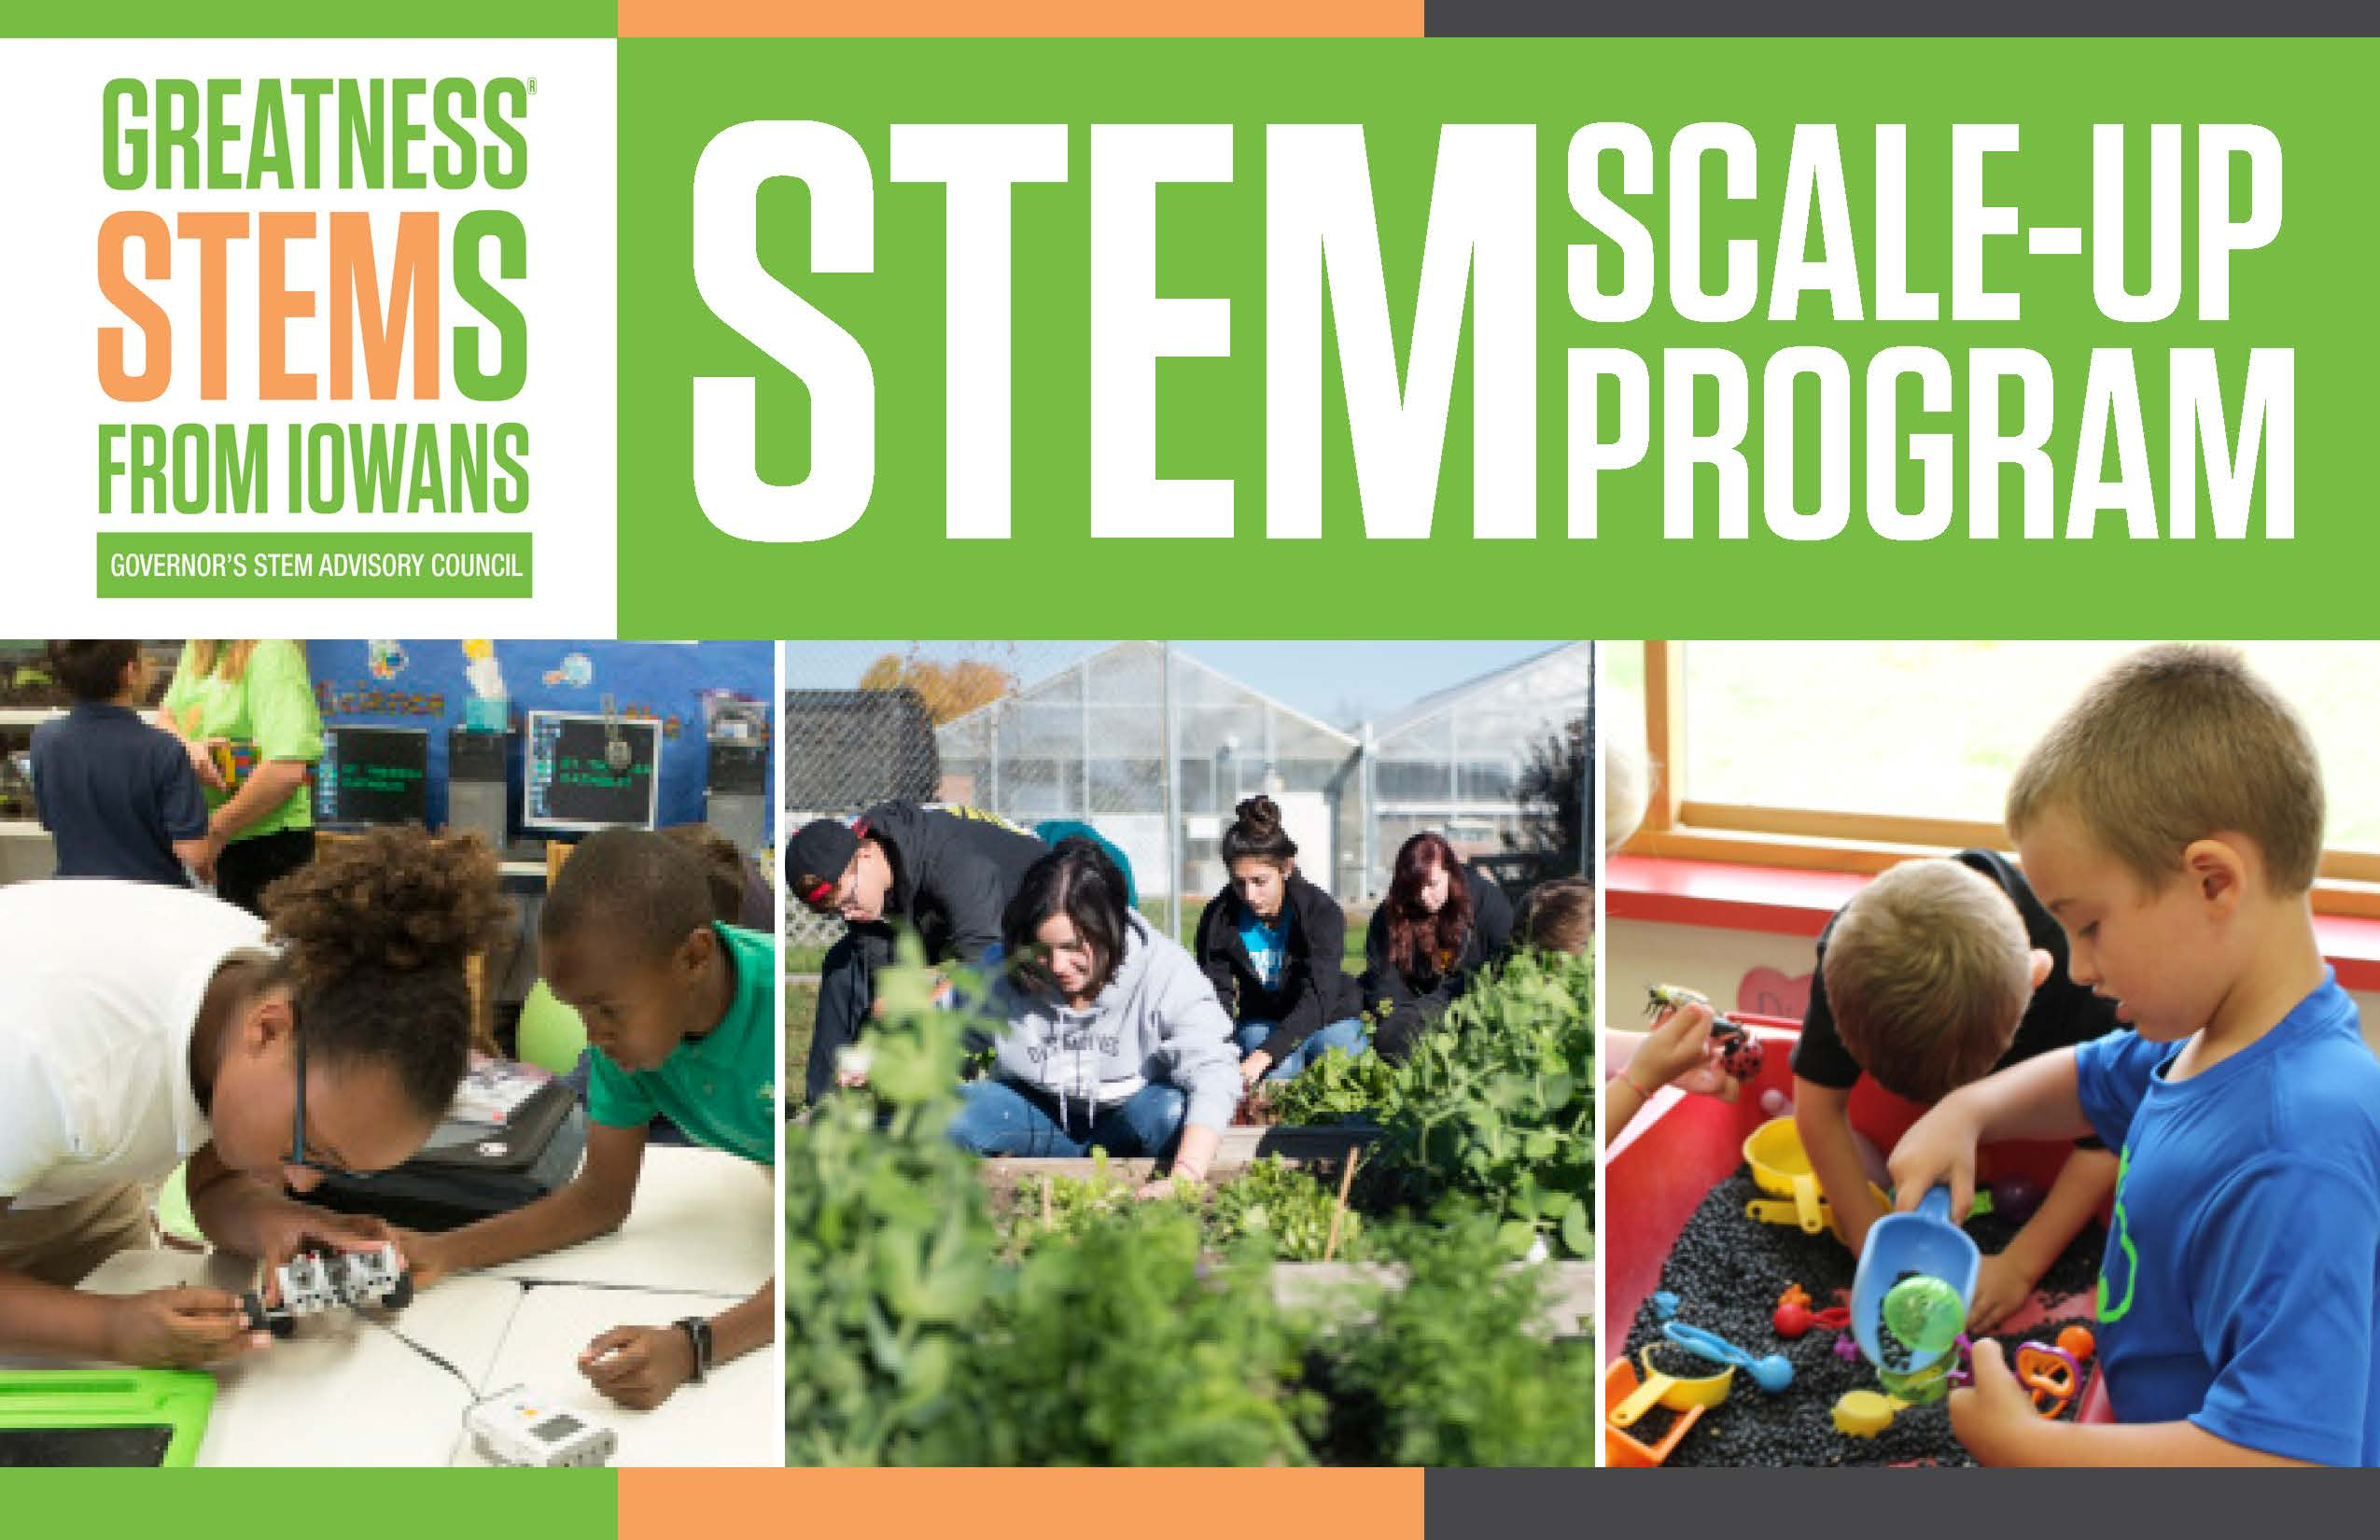 STEM Scale-Up Program